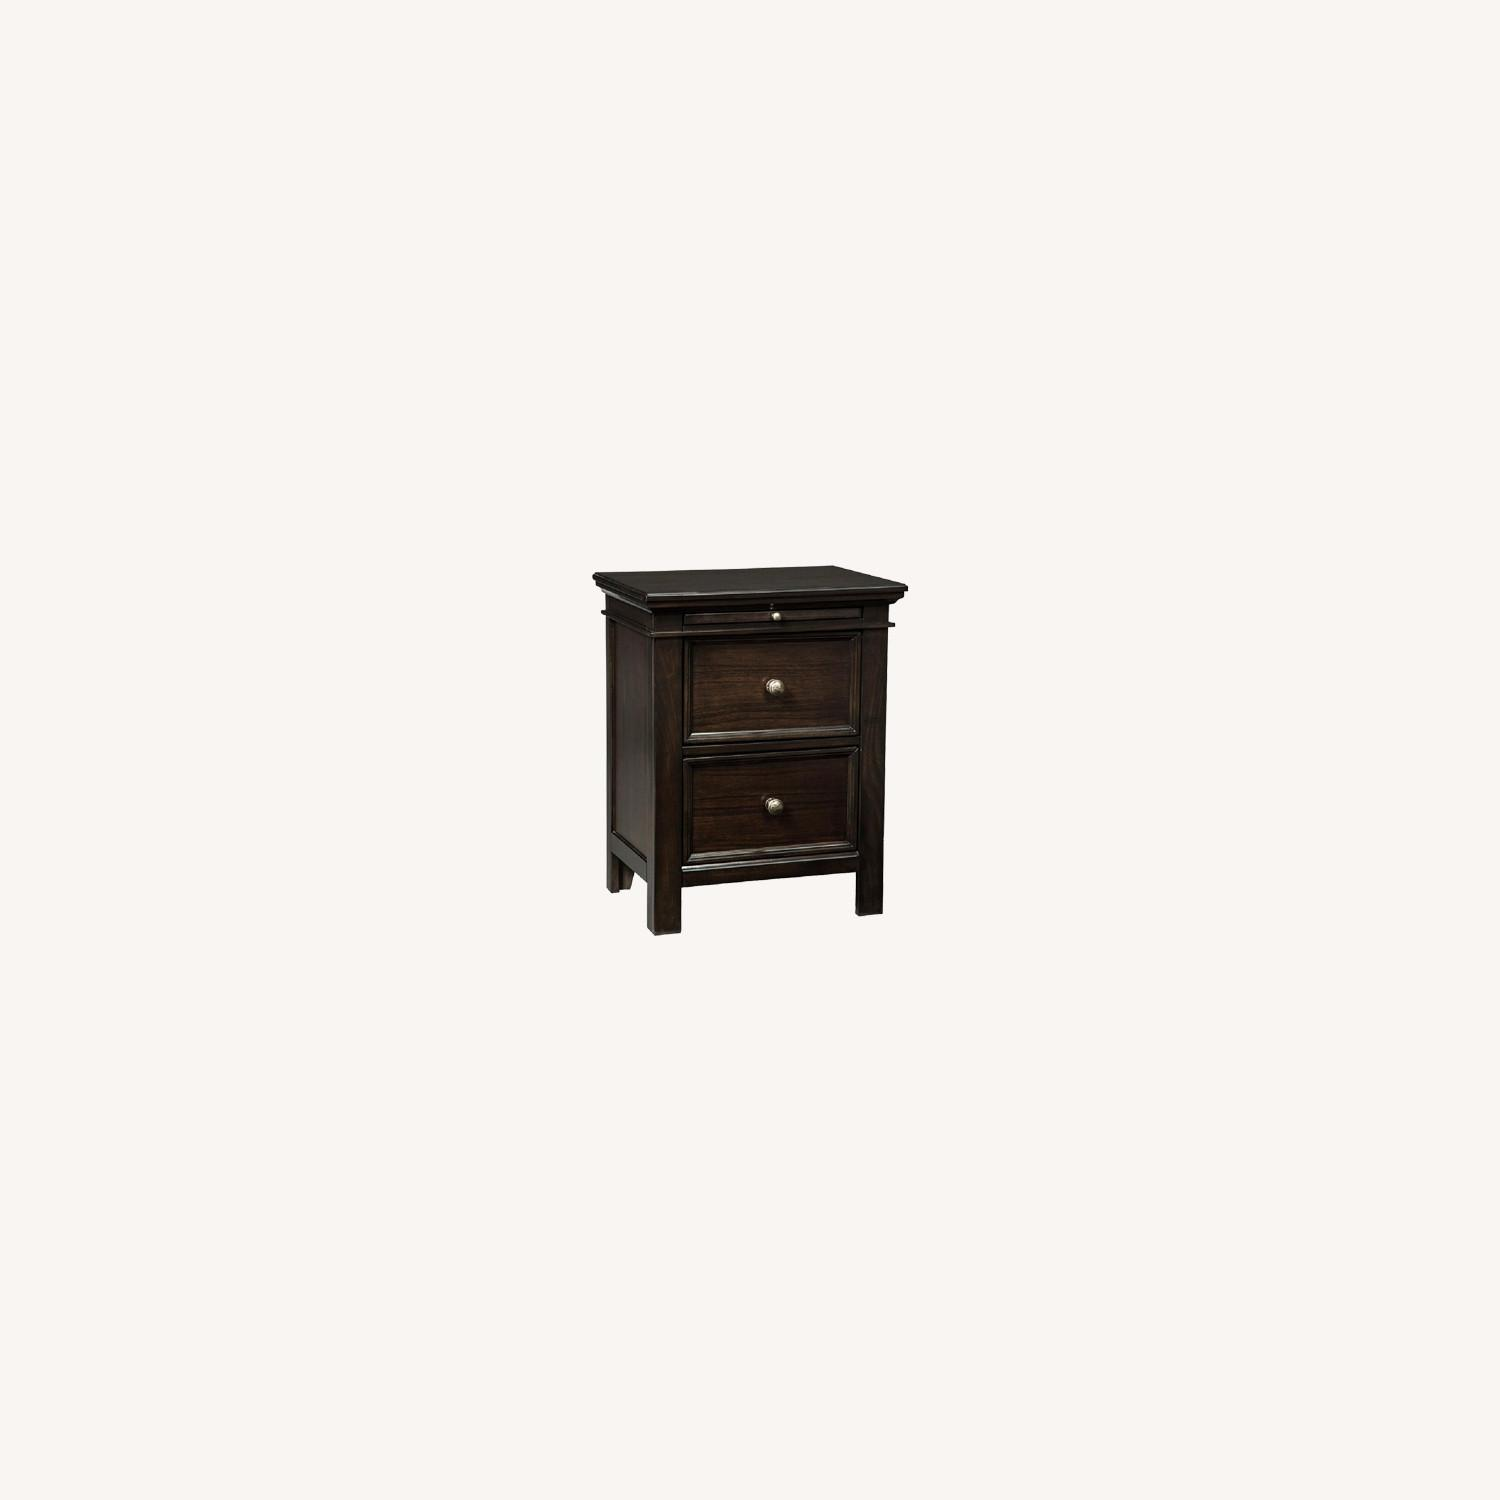 Ashley Furniture Alexee Nightstand - image-0